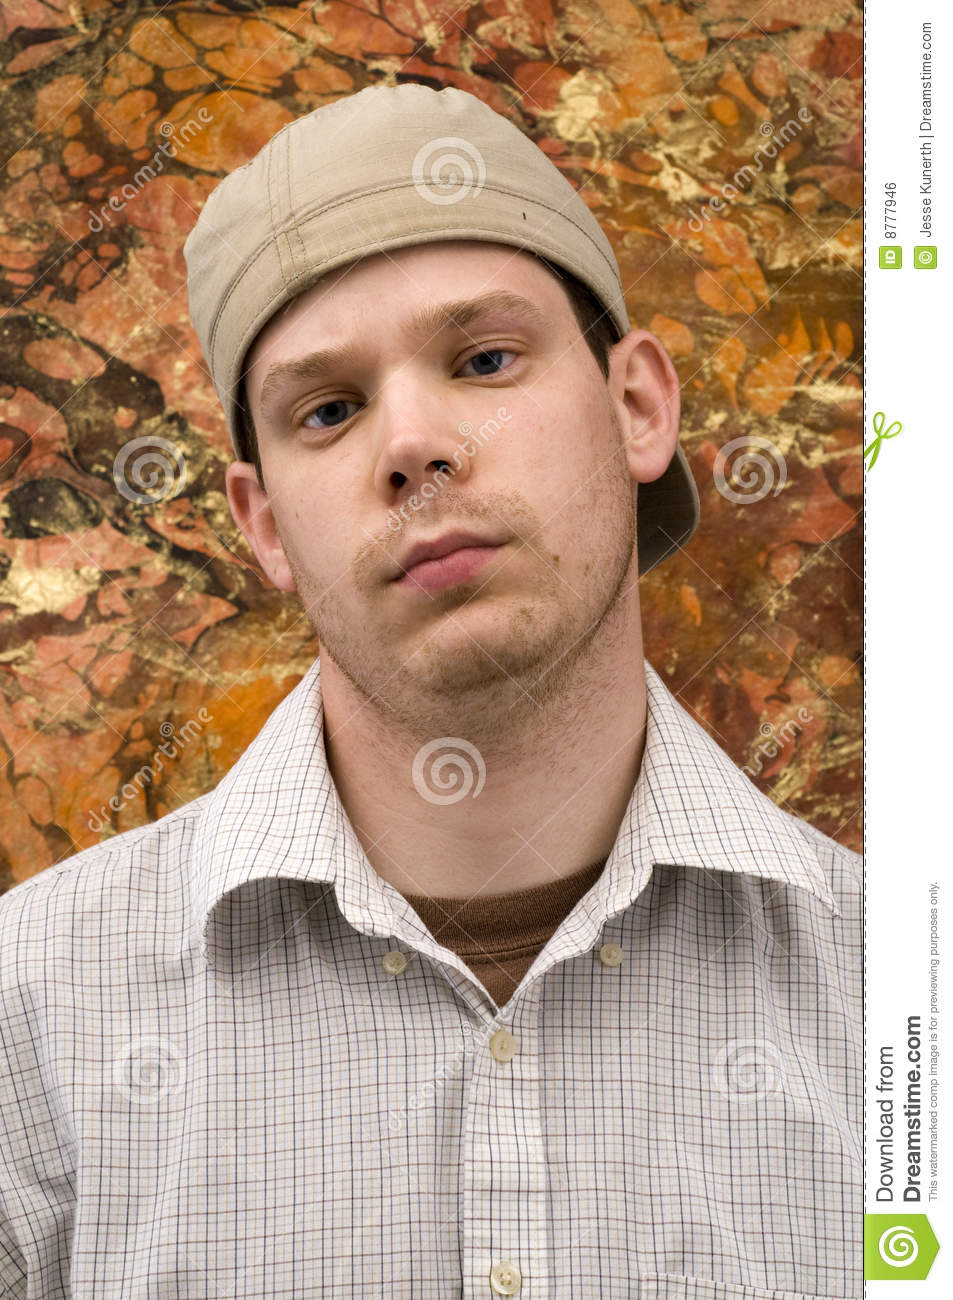 15 Year Boys Bedroom: Young Man With Tough Look Stock Photo. Image Of Backwards